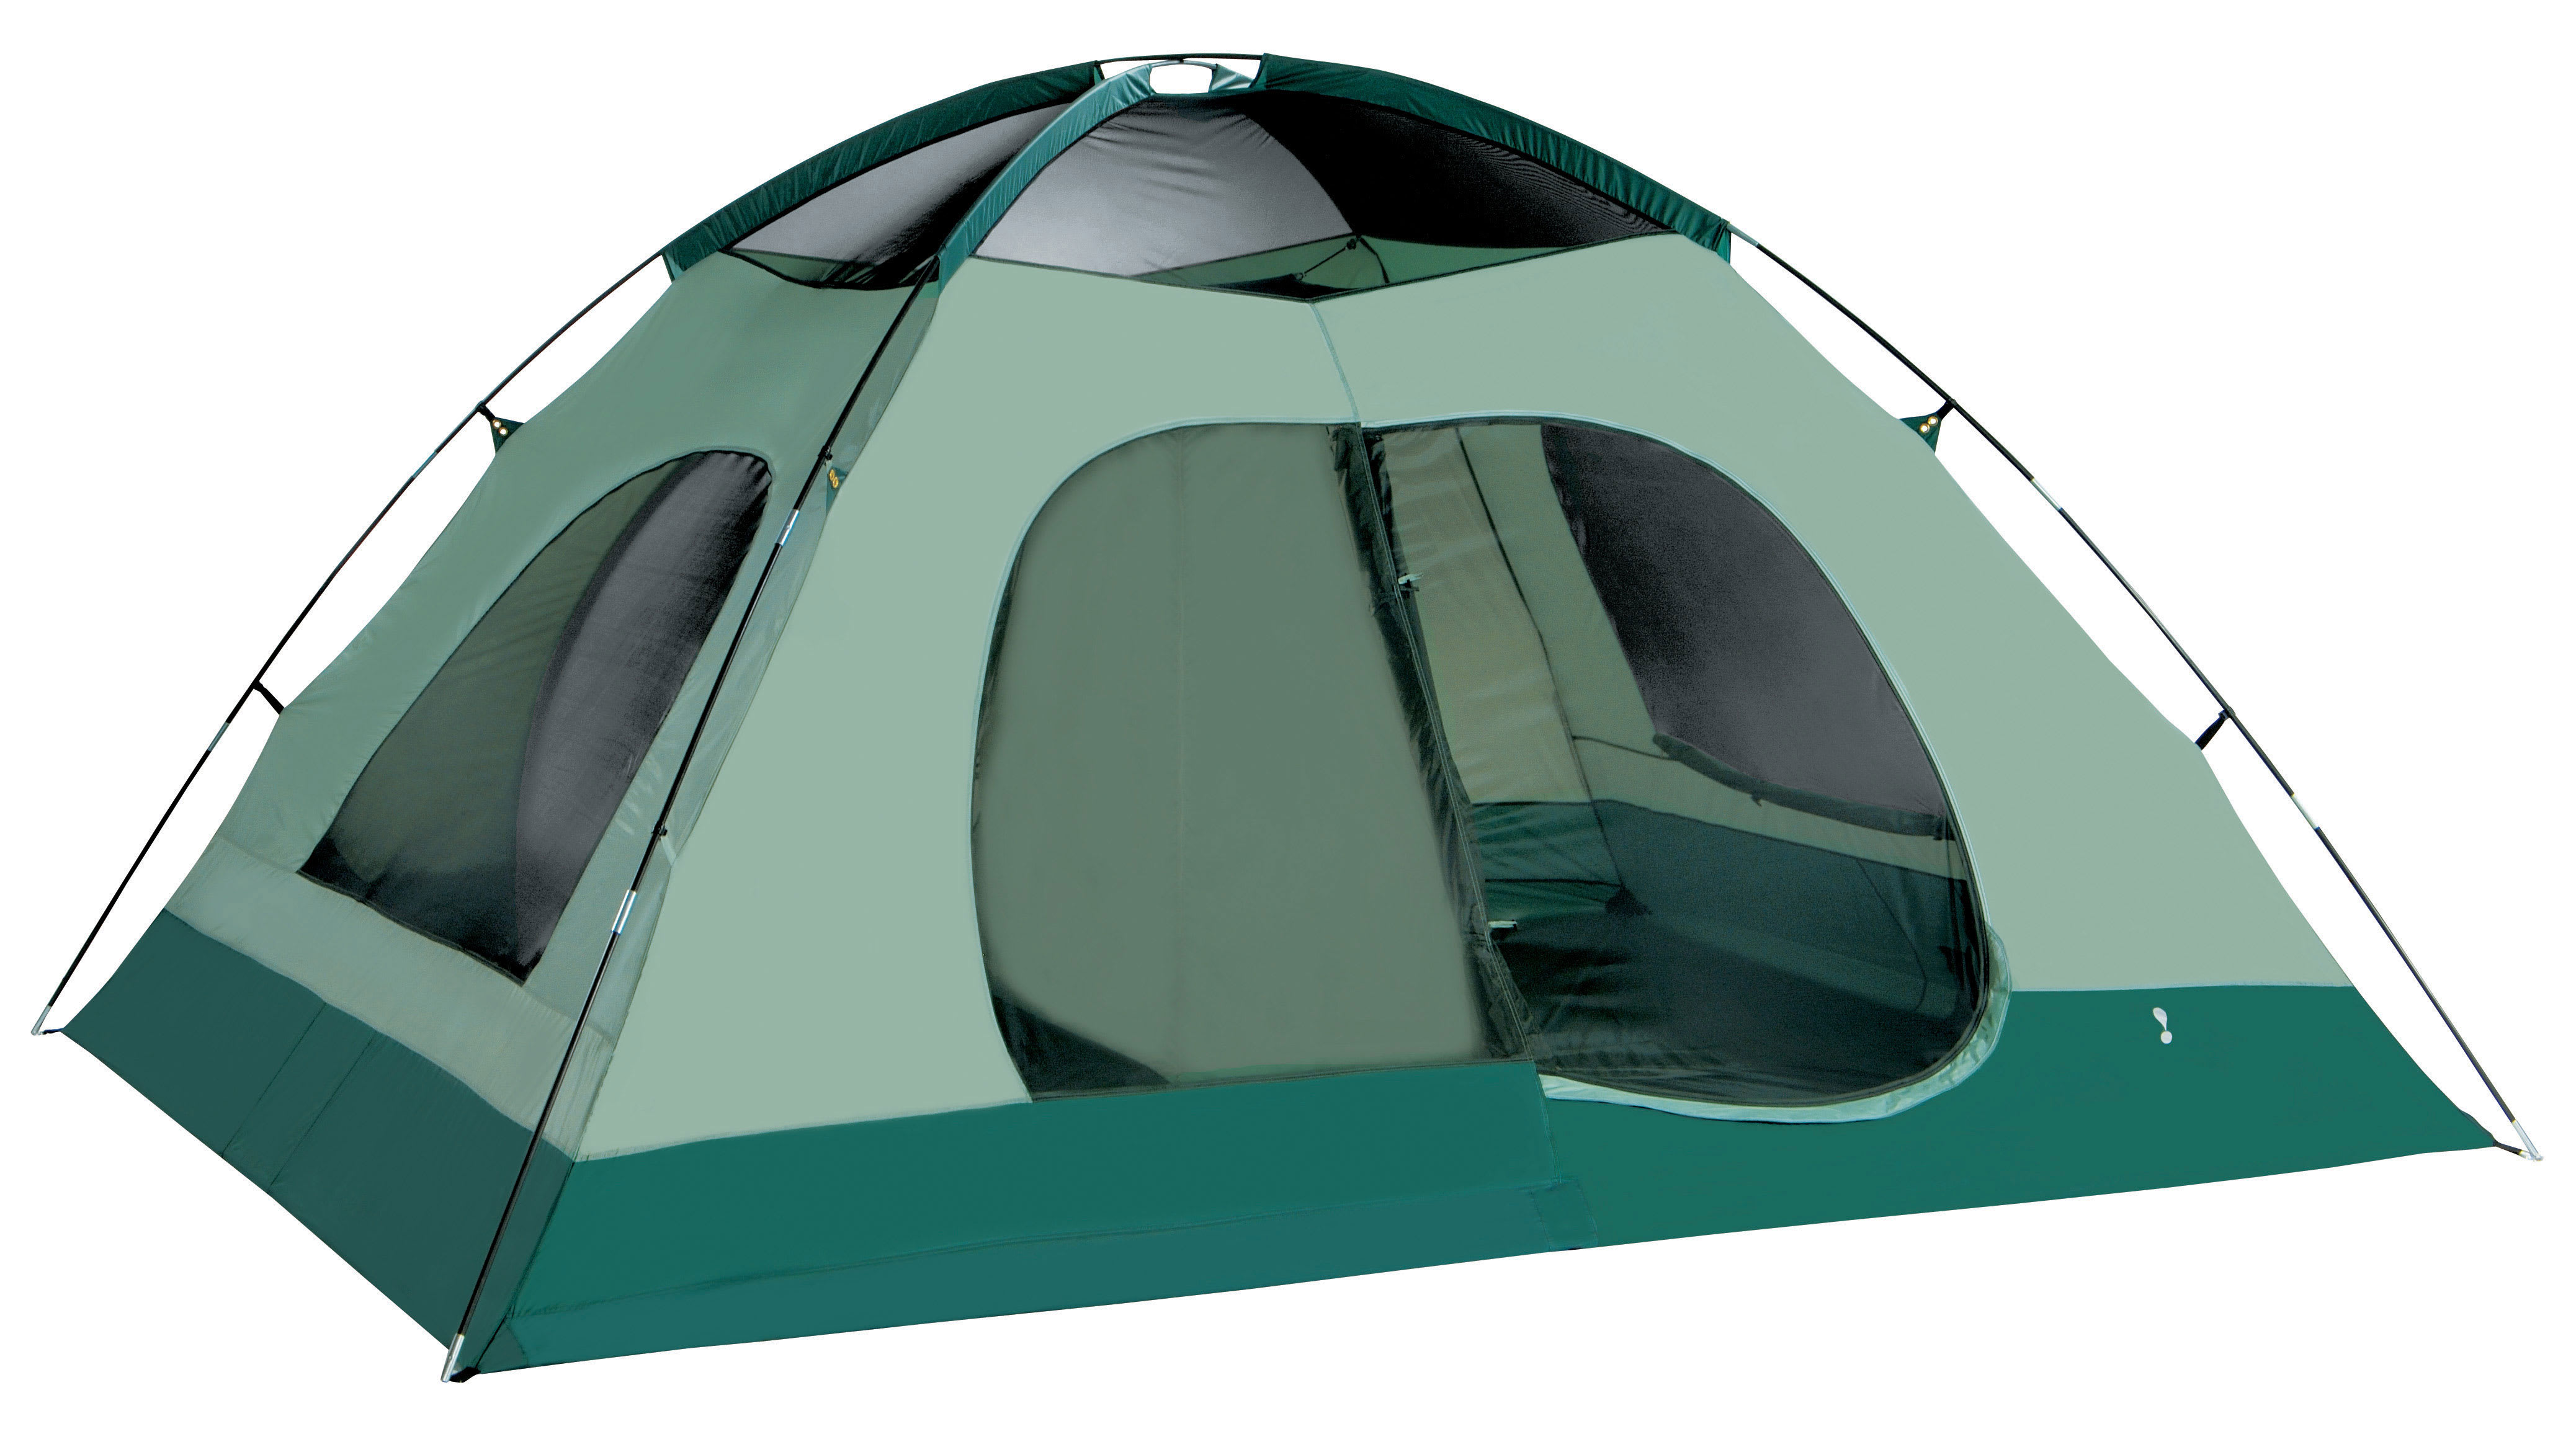 Eureka Tetragon 1210 2 Room Tent - thumbnail 2  sc 1 st  The House & On Sale Eureka Tetragon 1210 2 Room Tent up to 70% off